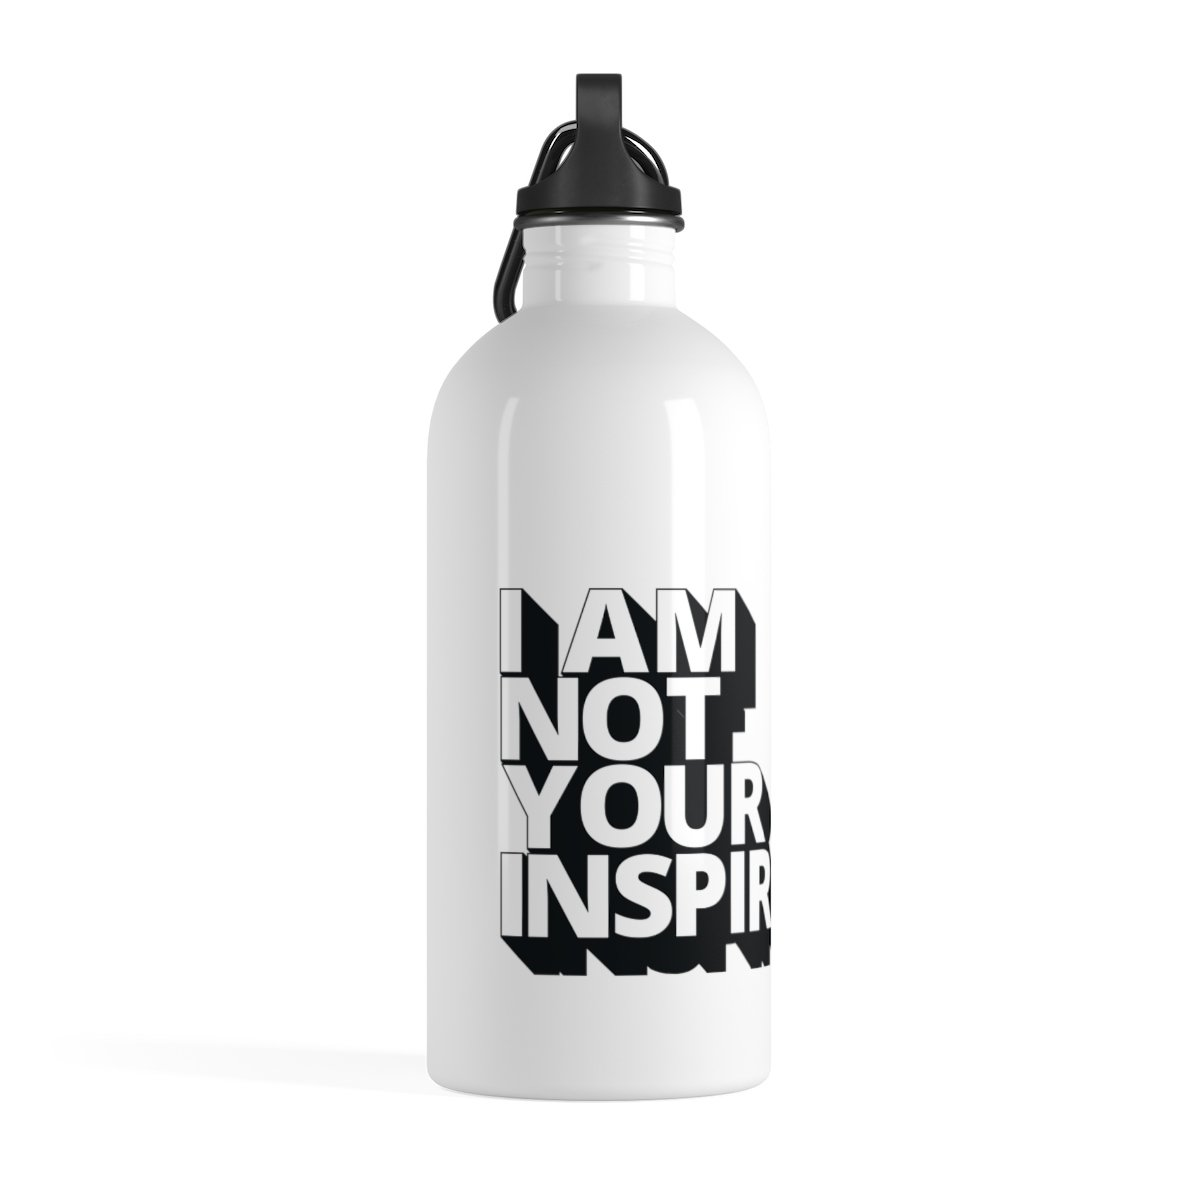 Not Your Inspiration Stainless Steel Water Bottle-Mug-14oz-Uncomfortable Revolution-I AM NOT YOUR INSPIRATION written in white big caps with black shadows under each letter to produce a block effect.